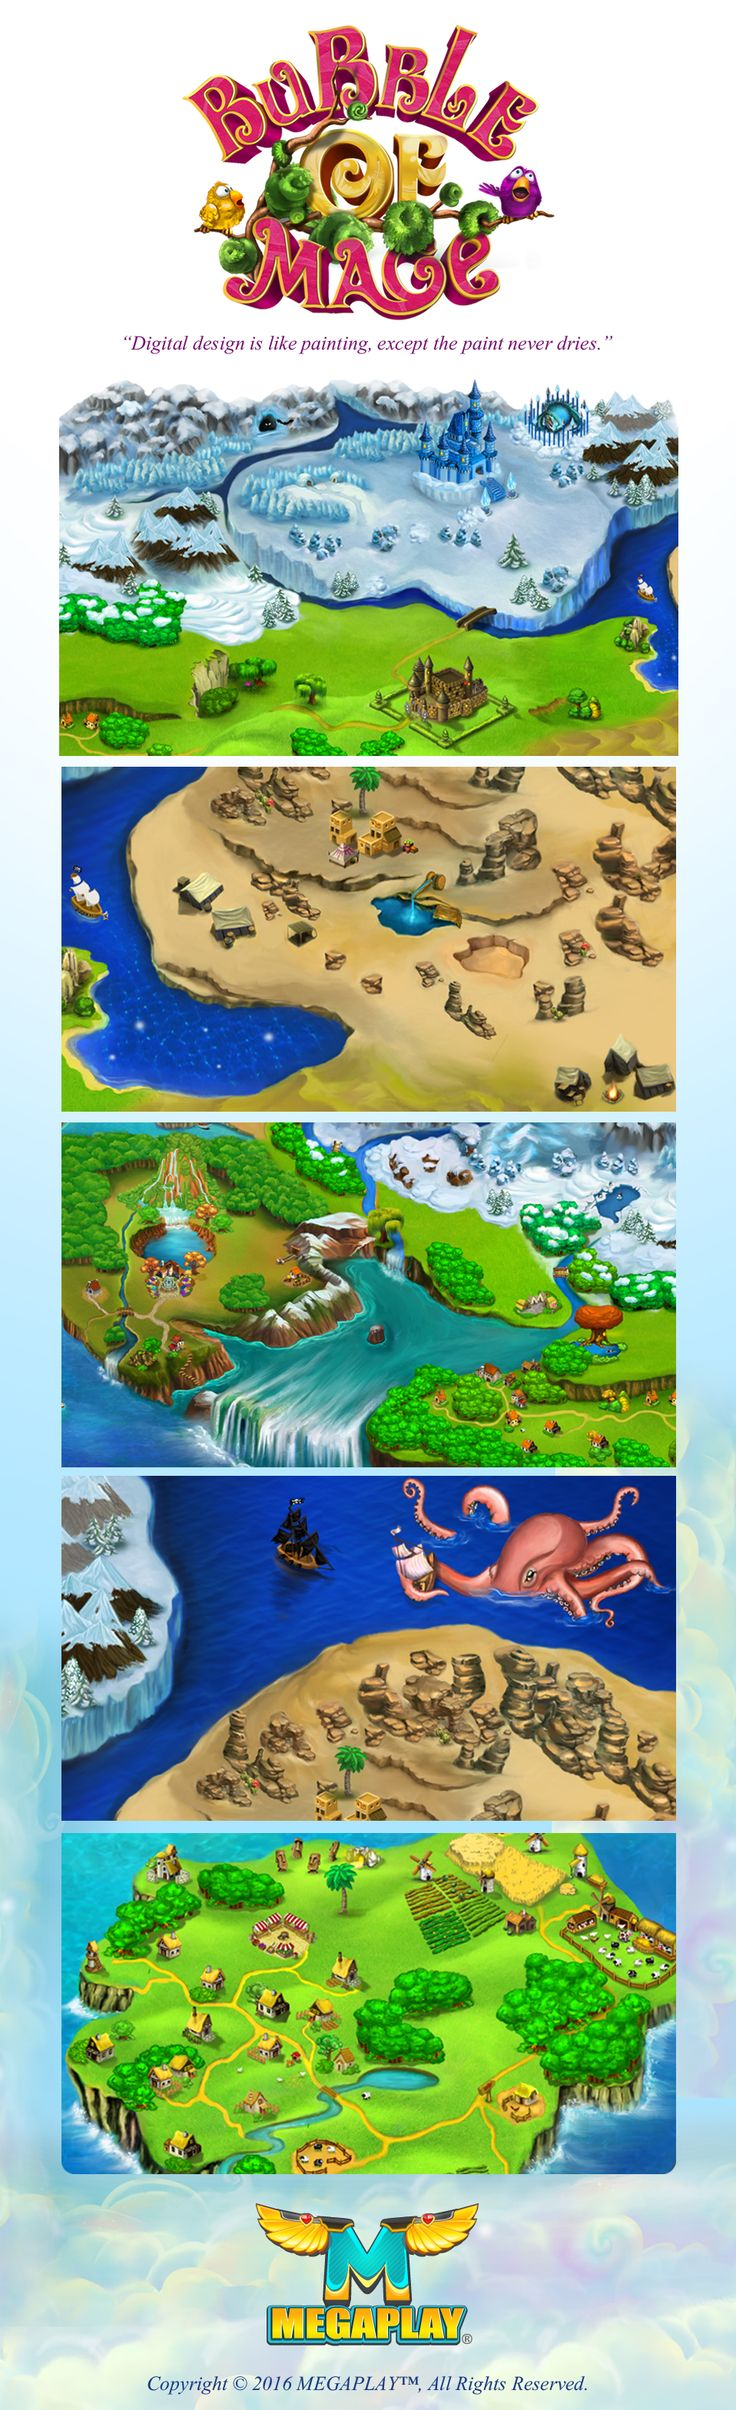 "Digital Painting of Map & Logotype for Social Facebook Puzzle Game ""Bubble of Mage""  by Megaplay Games. Art by Bella Muradov"